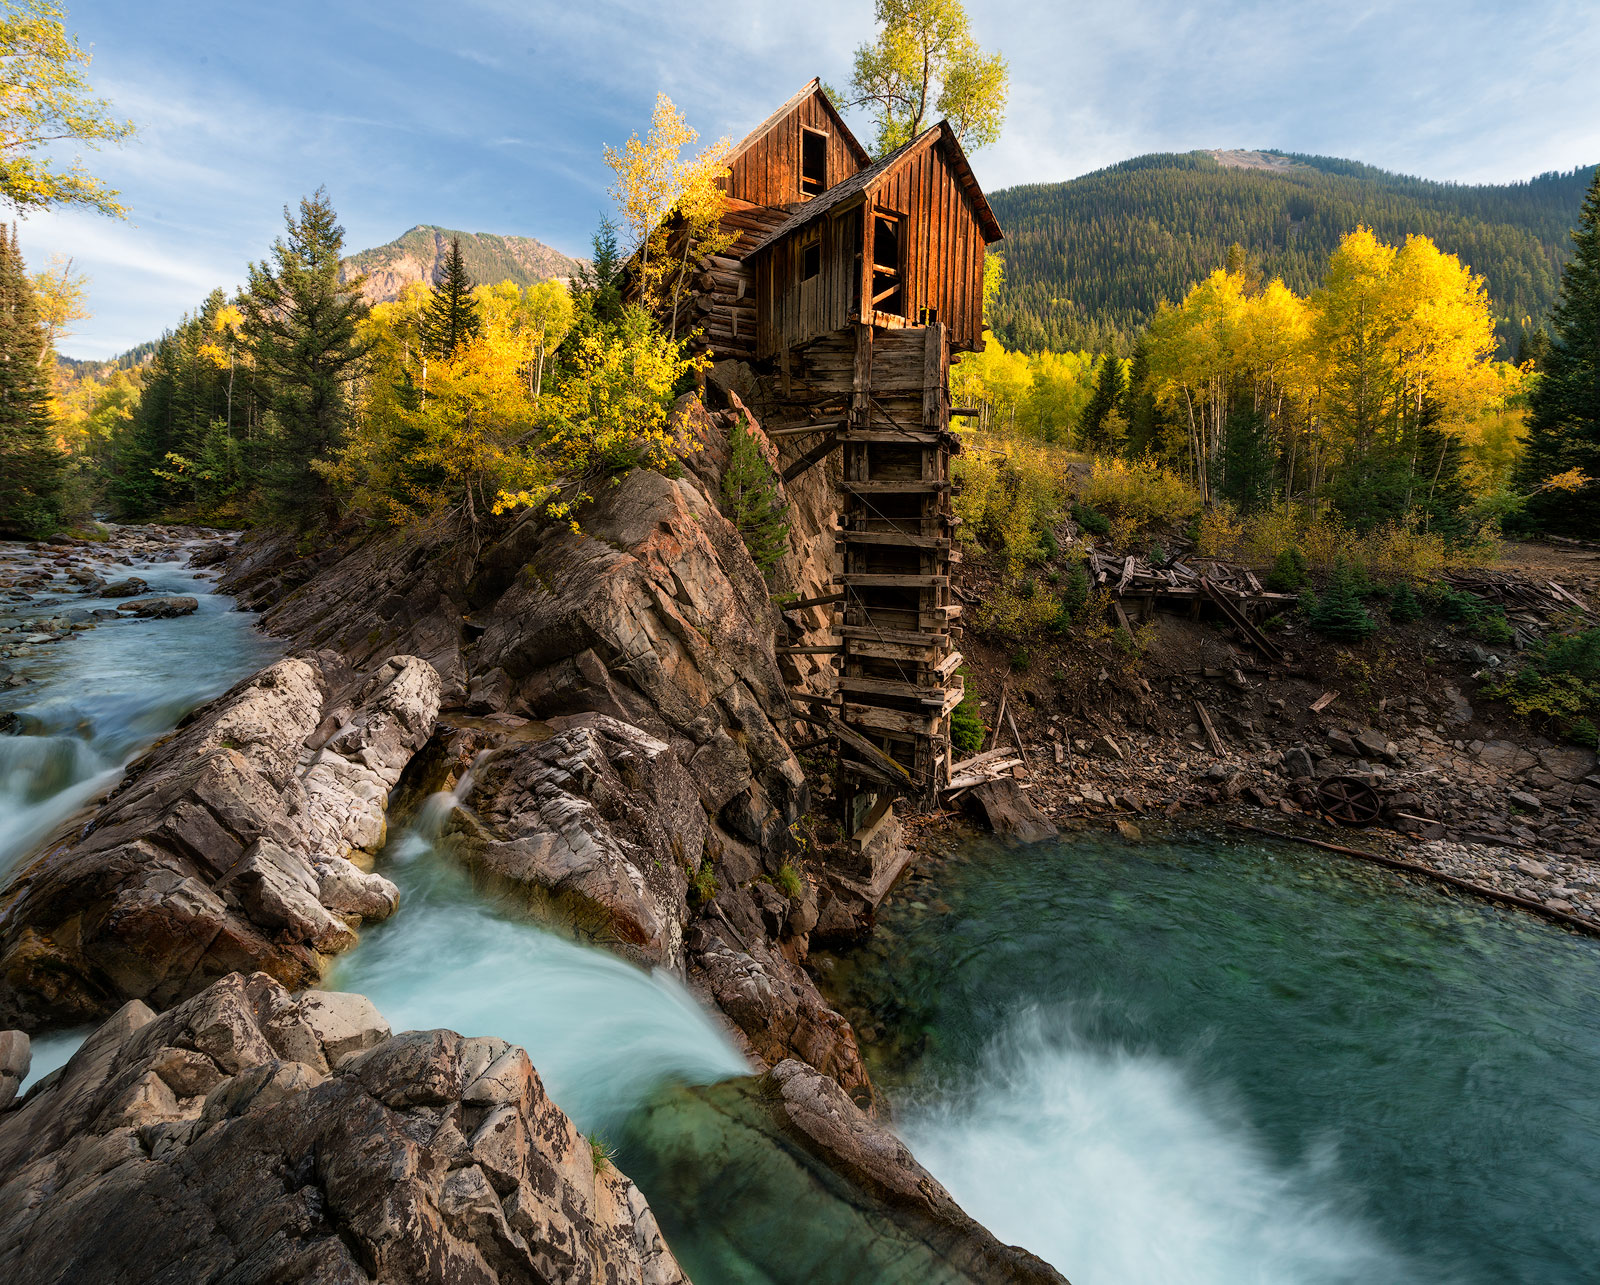 Crystal Mill, Colorado, Spring, waterfall, old structure, marble, mountains, snow, aspen, golden, famous, photos, location, autumn, bernard chen, timescapes, photo